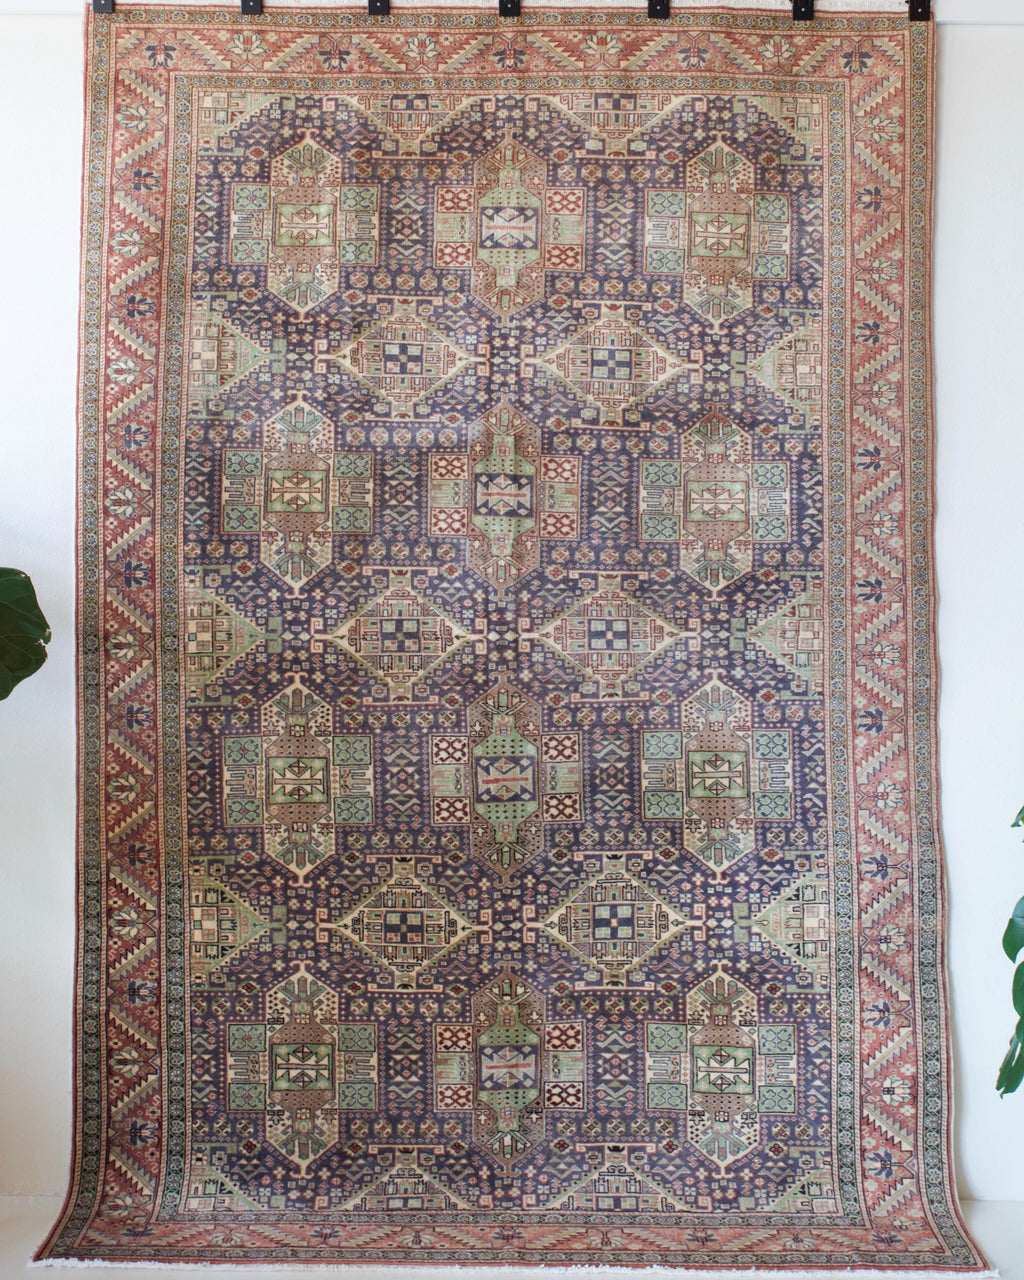 old rug, antique rug, earthy colors, faded colors, Turkish rug, vintage rug, soft rug, Portland, Oregon, rug store, rug shop, local shop, pile rug, ottoman rug, oriental rug, floral rug